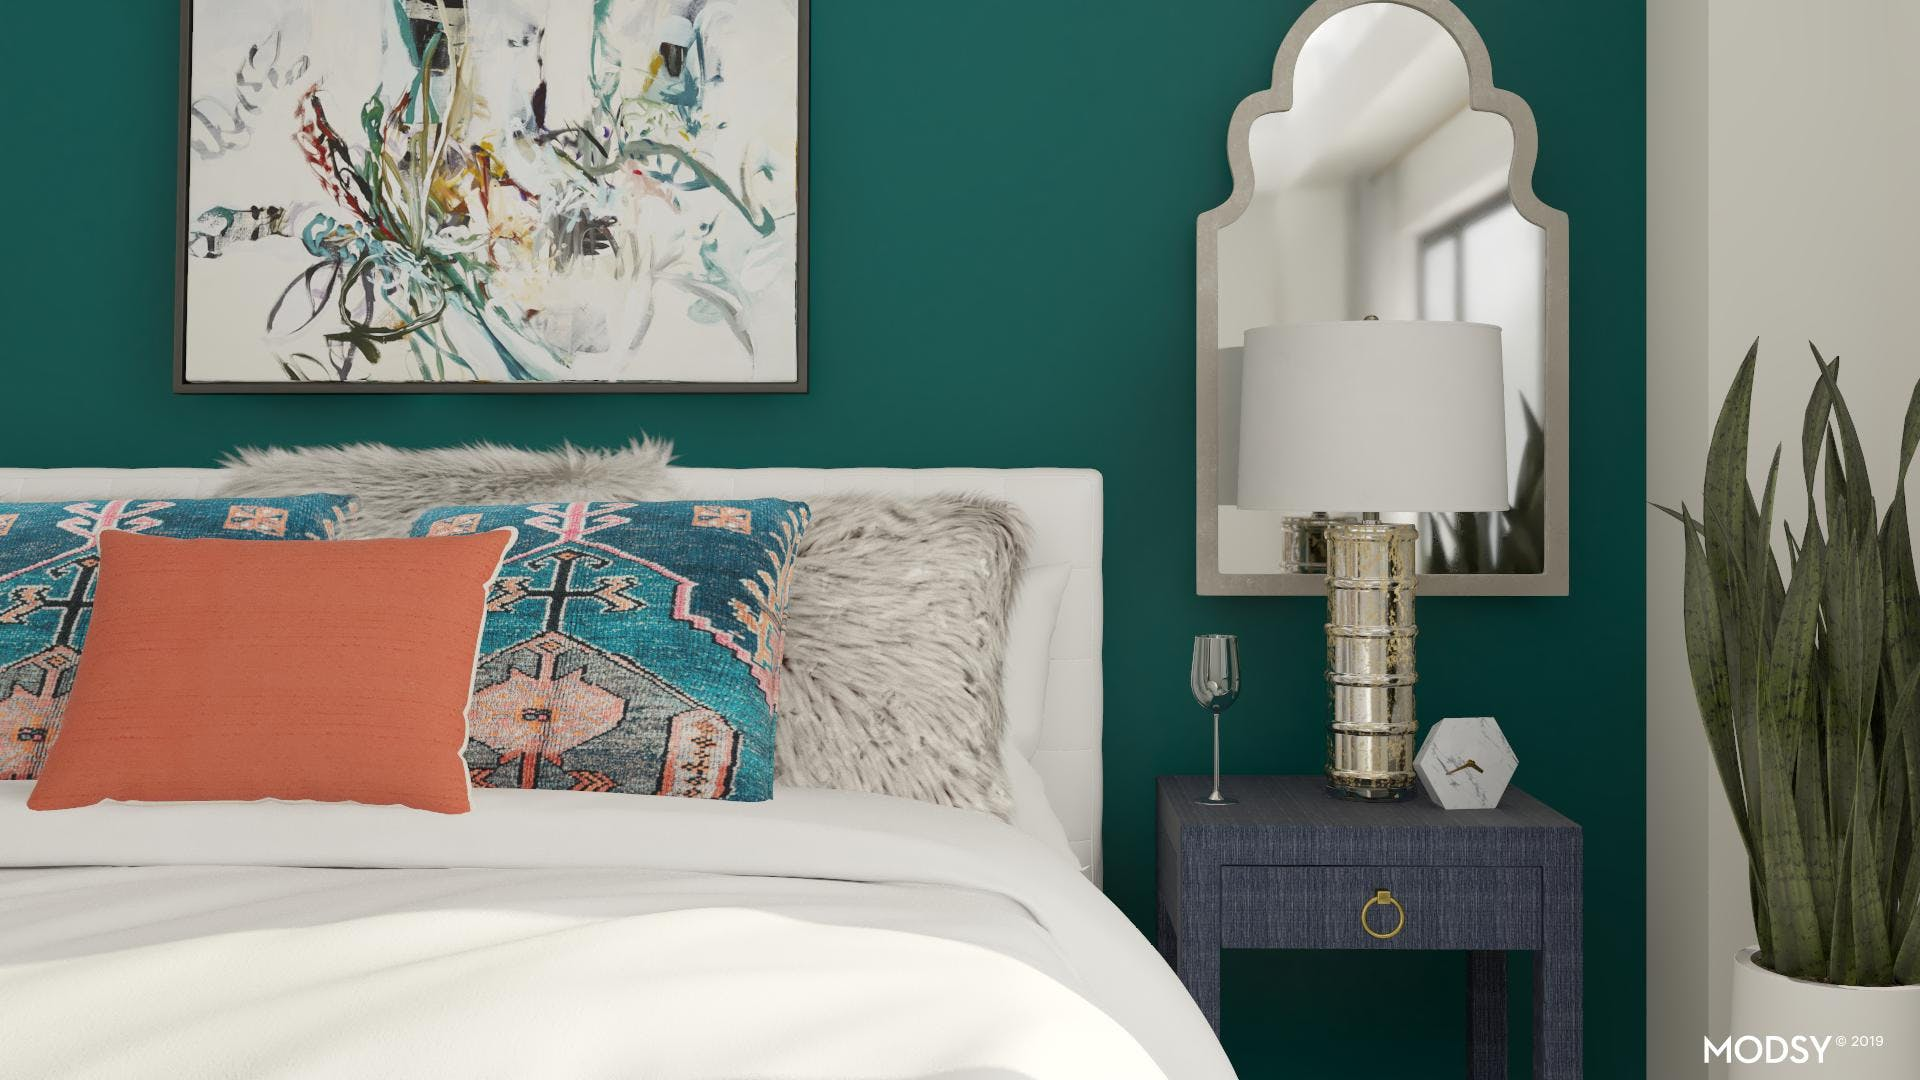 Textures and Bold Colors in the Bedroom